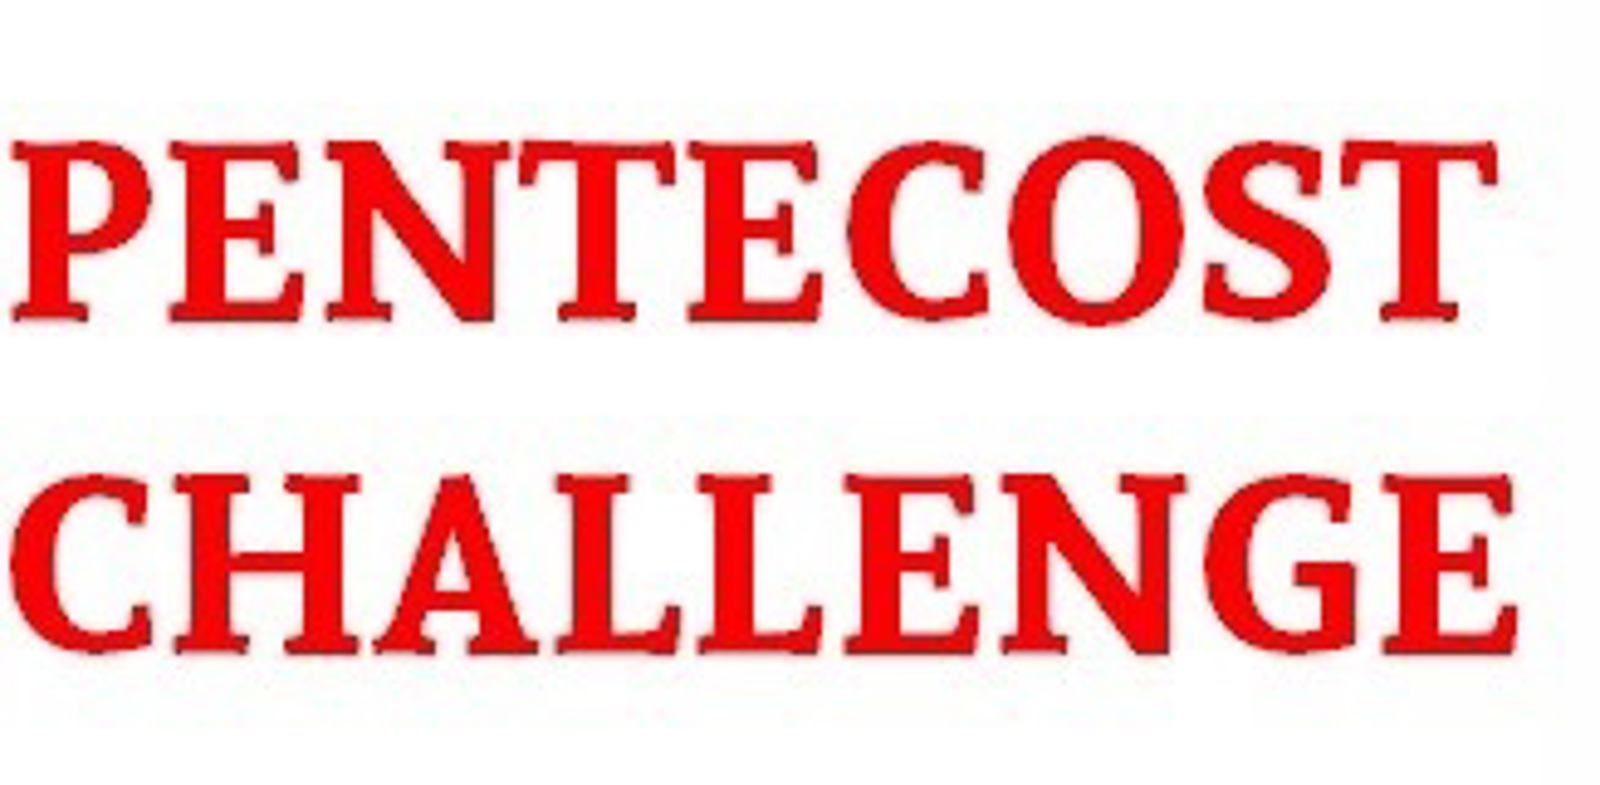 Please support the FHL Pentecost Challenge